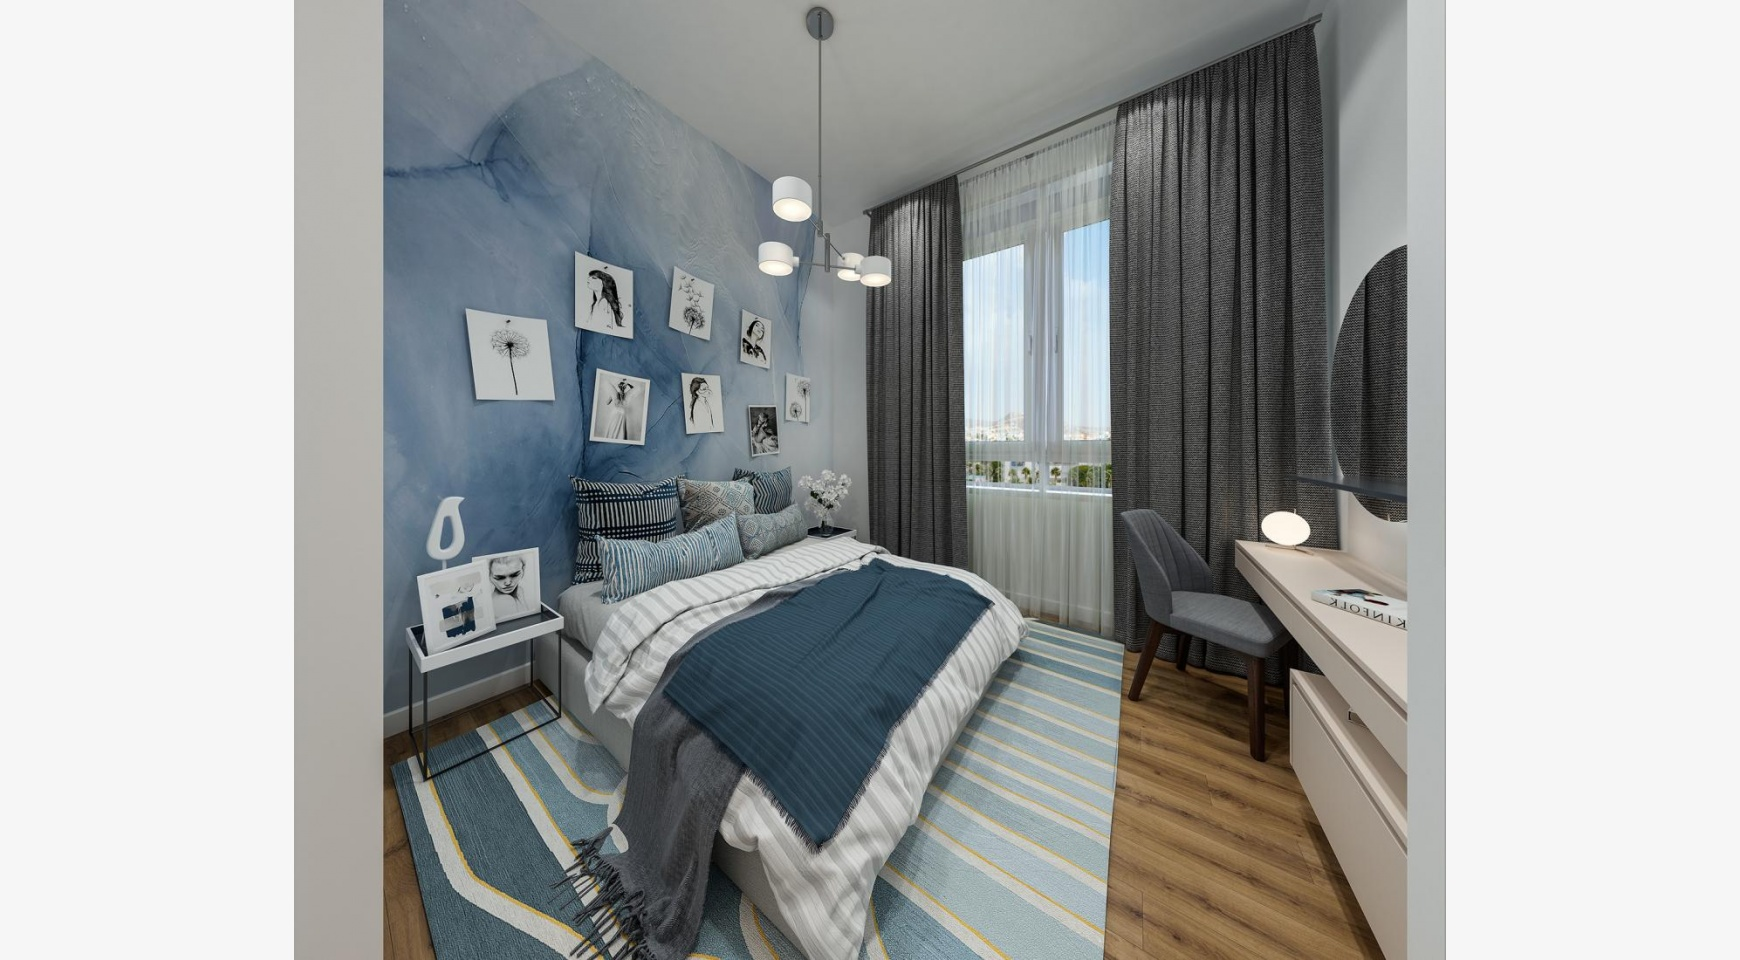 Urban City Residences, Block B. New Spacious 2 Bedroom Apartment 202 in the City Centre - 10